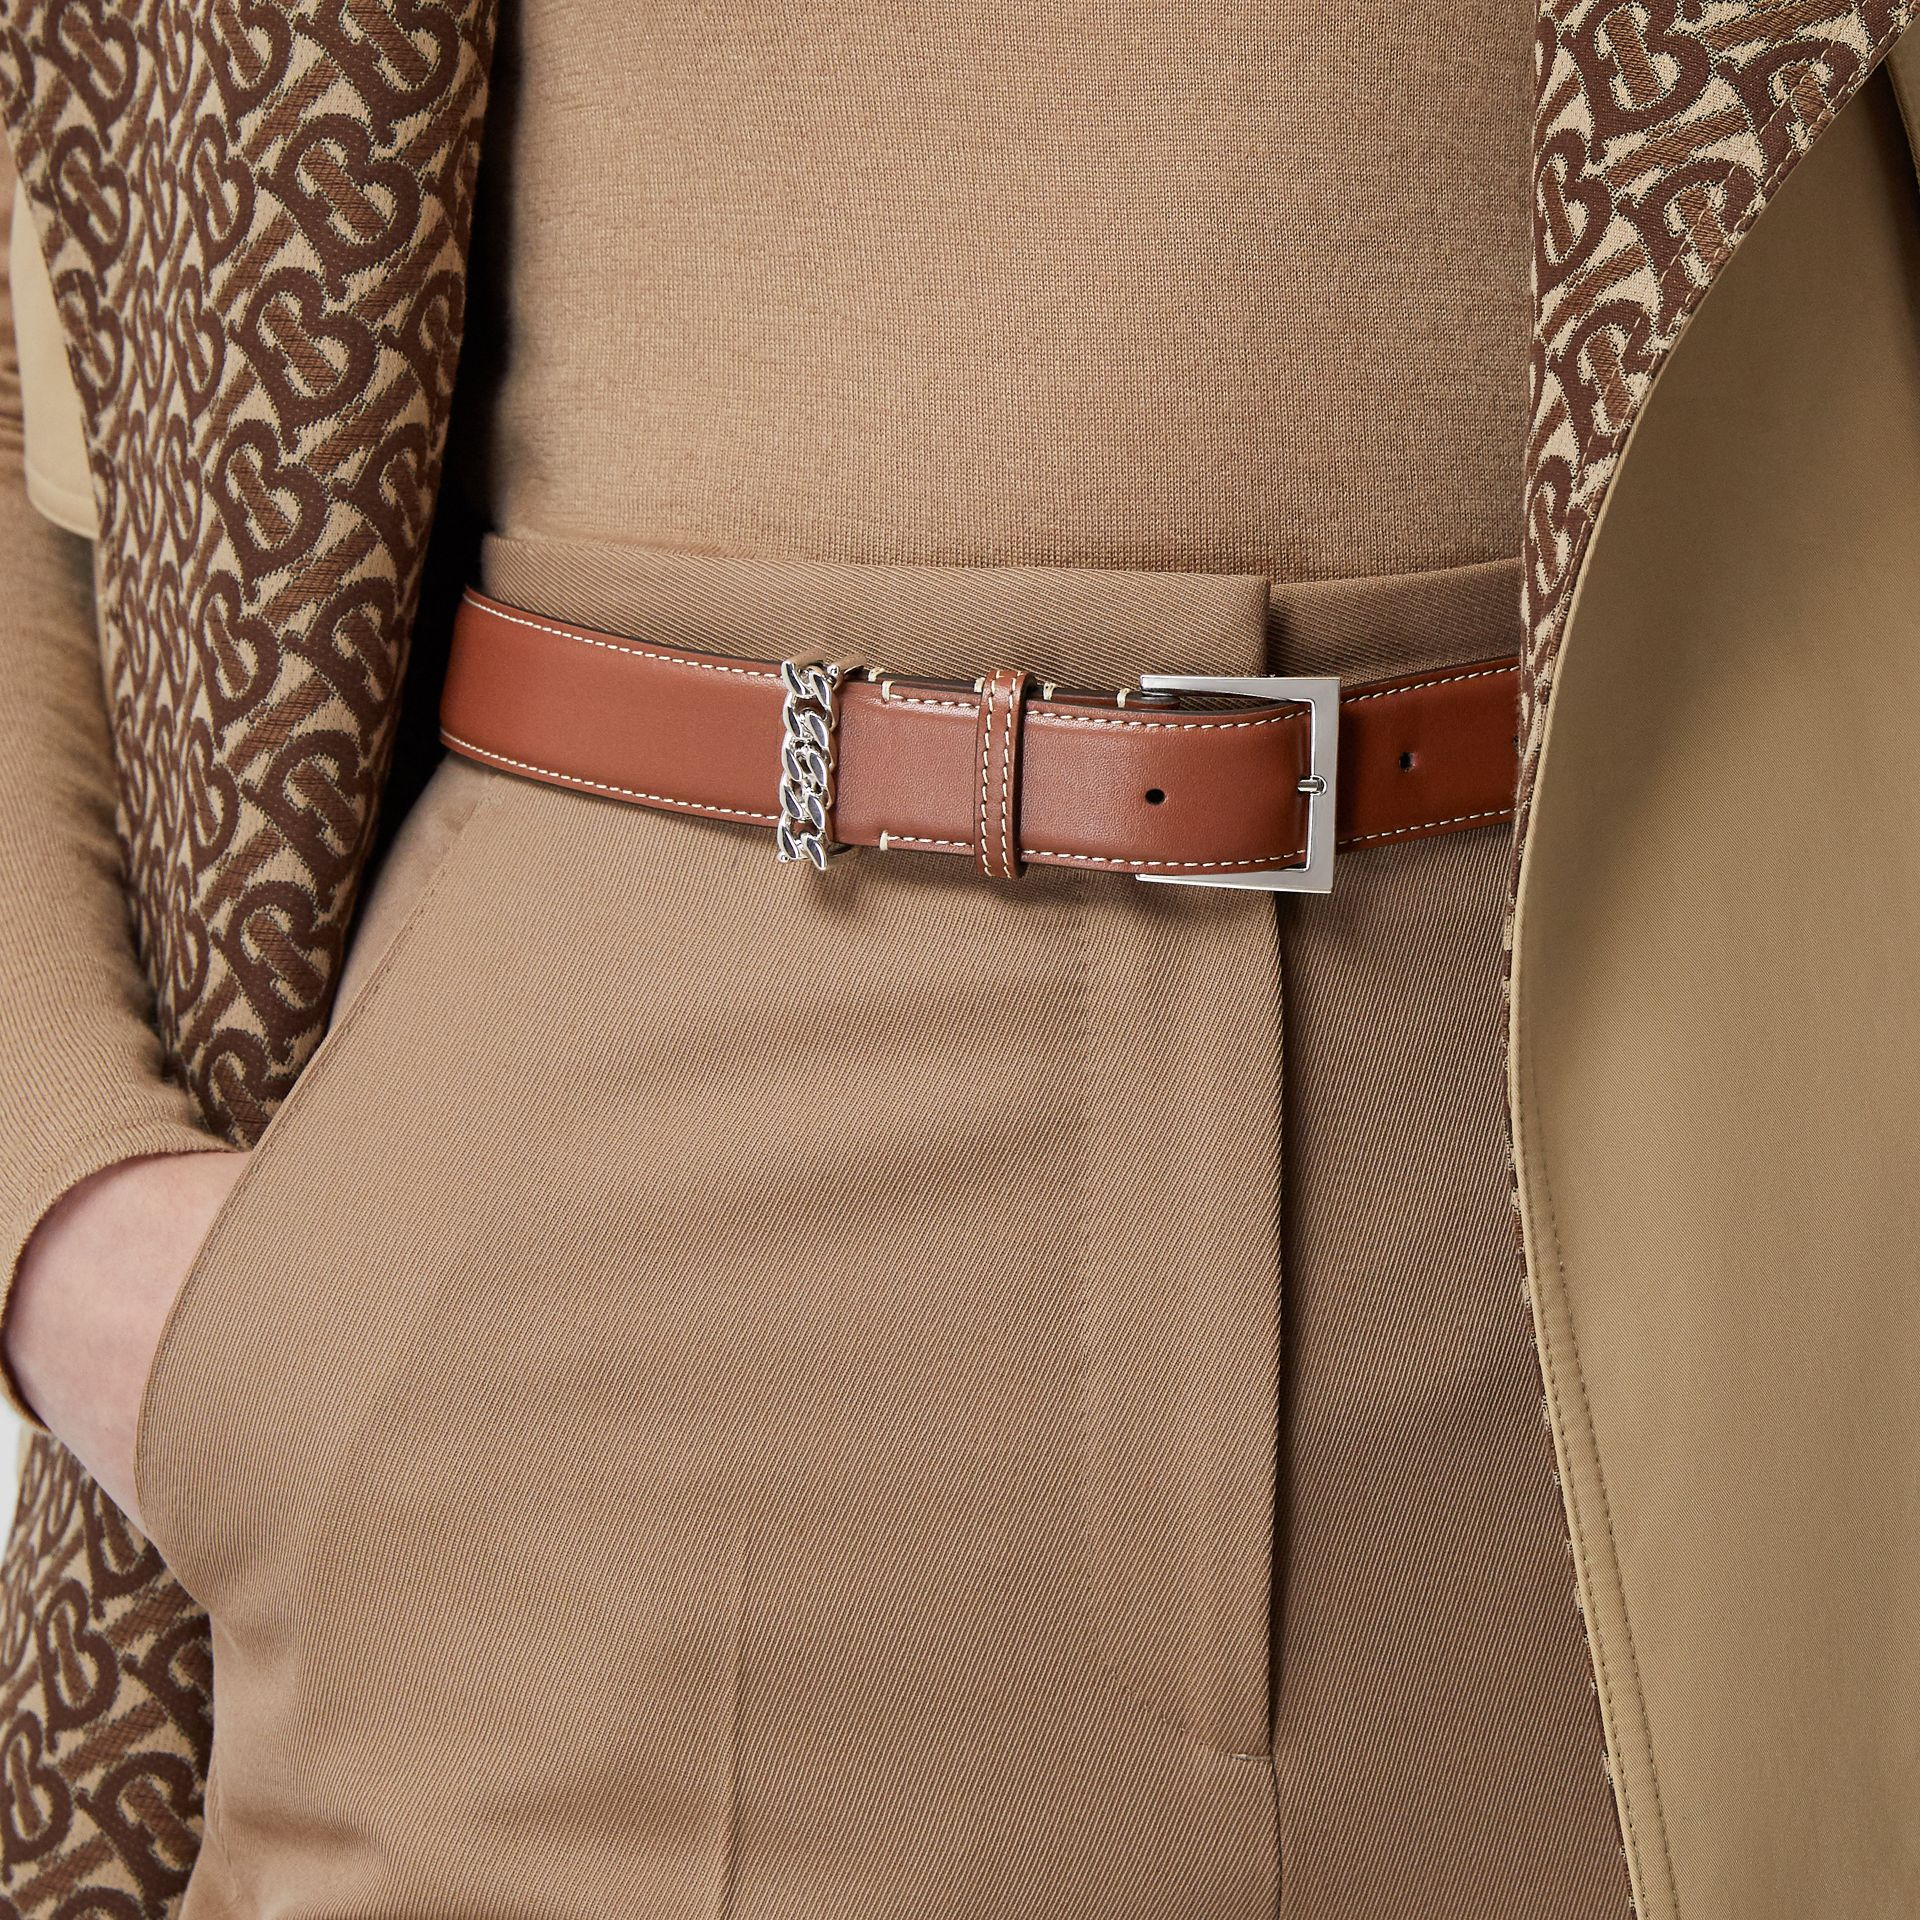 Chain Detail Topstitched Leather Belt in Tan/ecru - Women | Burberry - gallery image 2